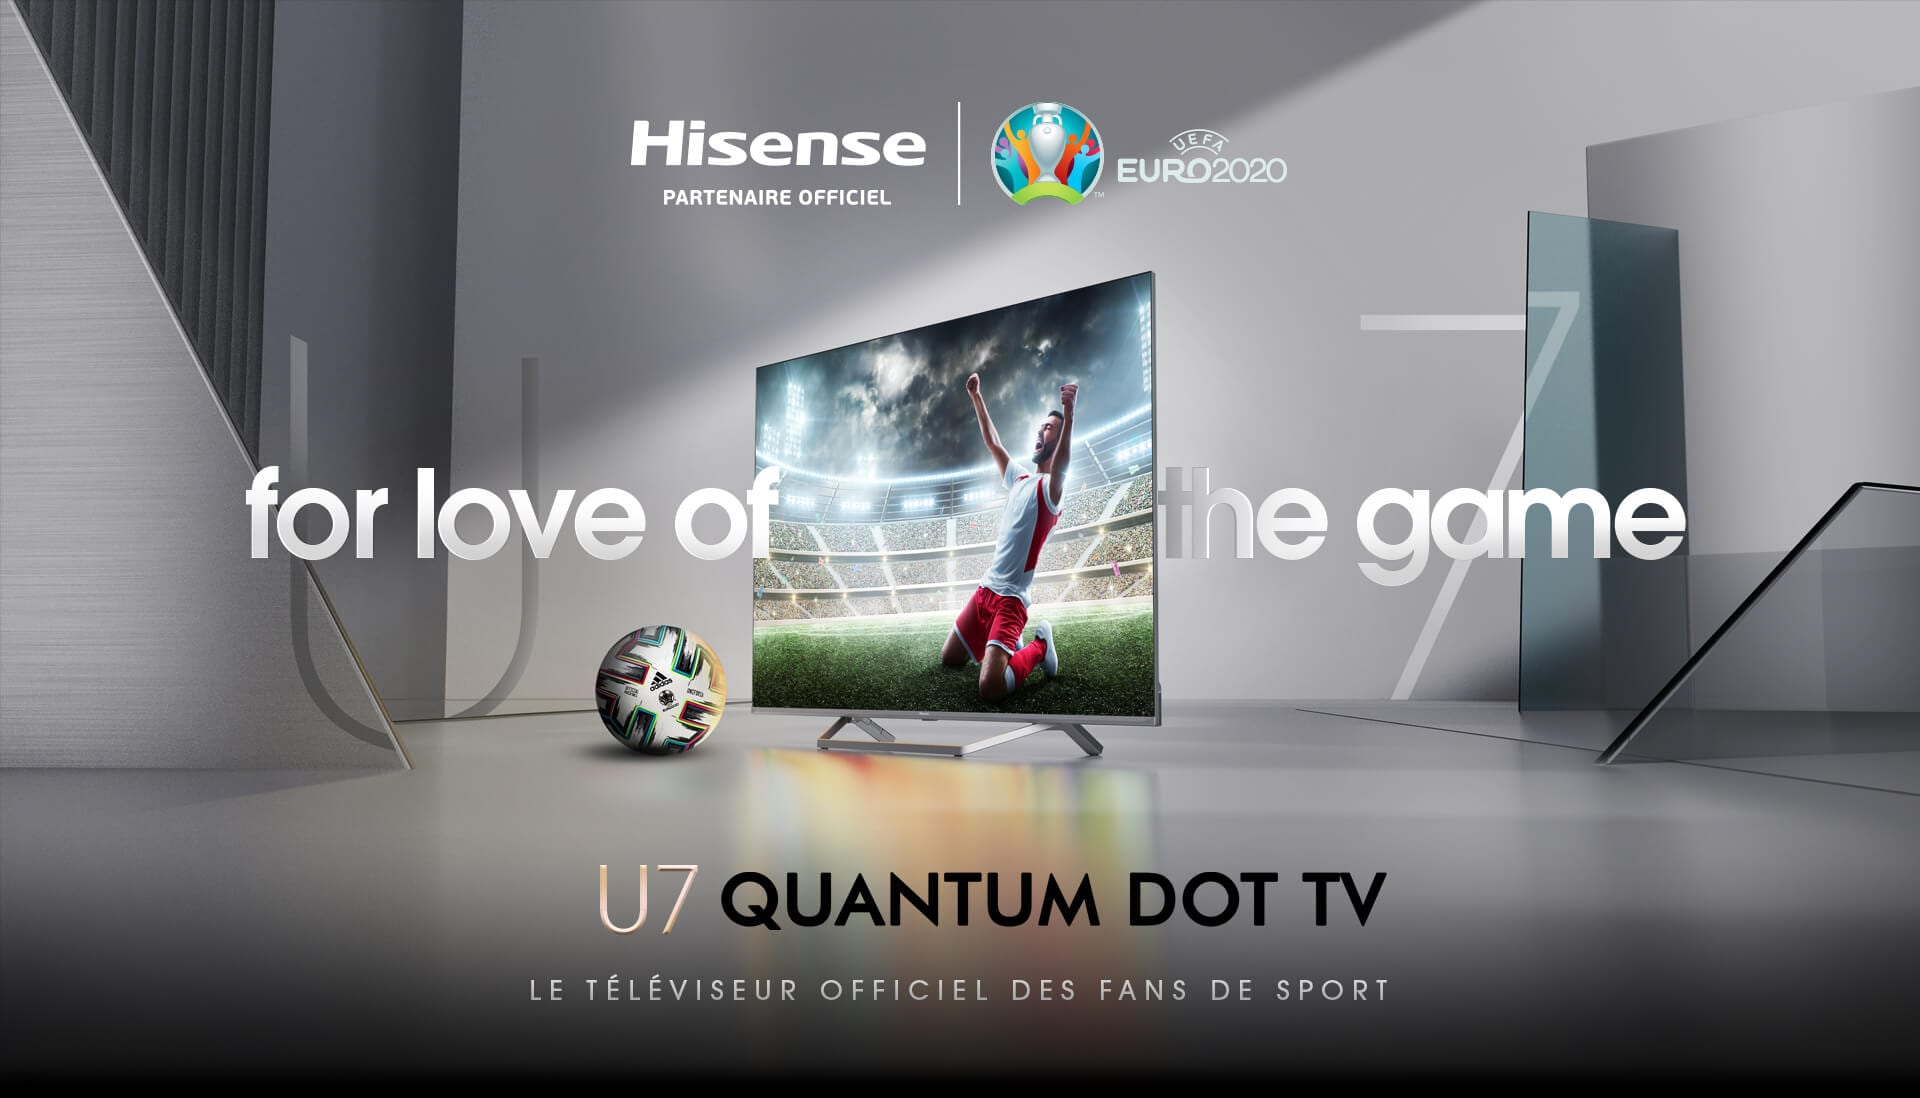 Hisense, partenaire officiel UEFA , for love of the game, U7 quantum dot tv, le téléviseur officiel des fans de sport